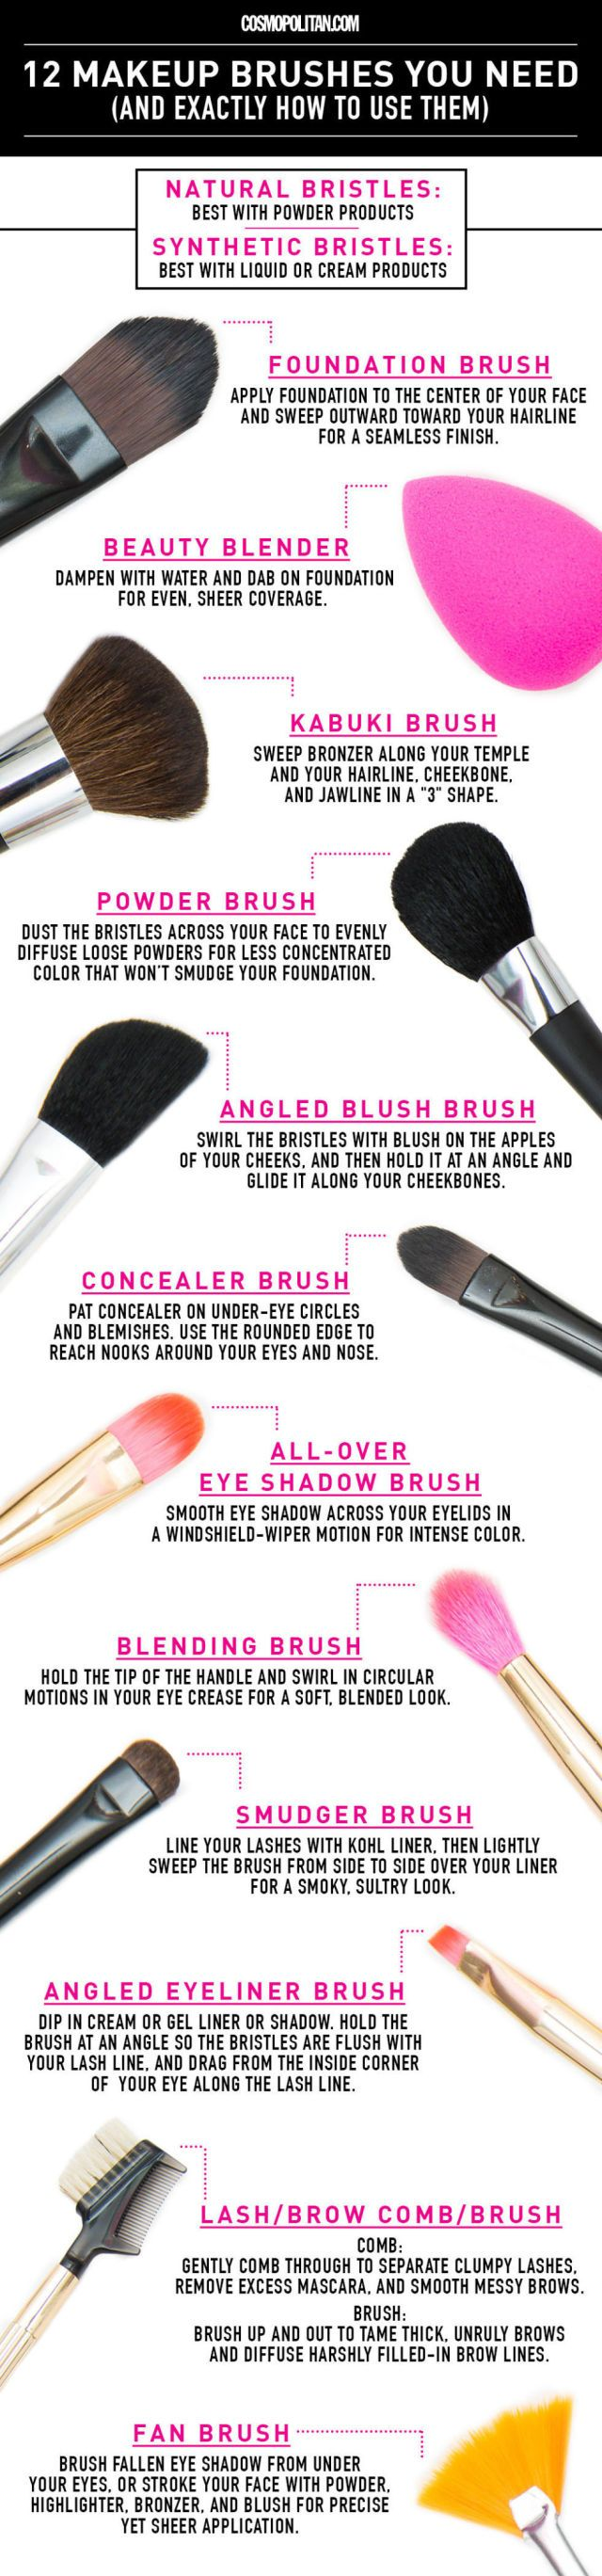 Makeup brush use guide